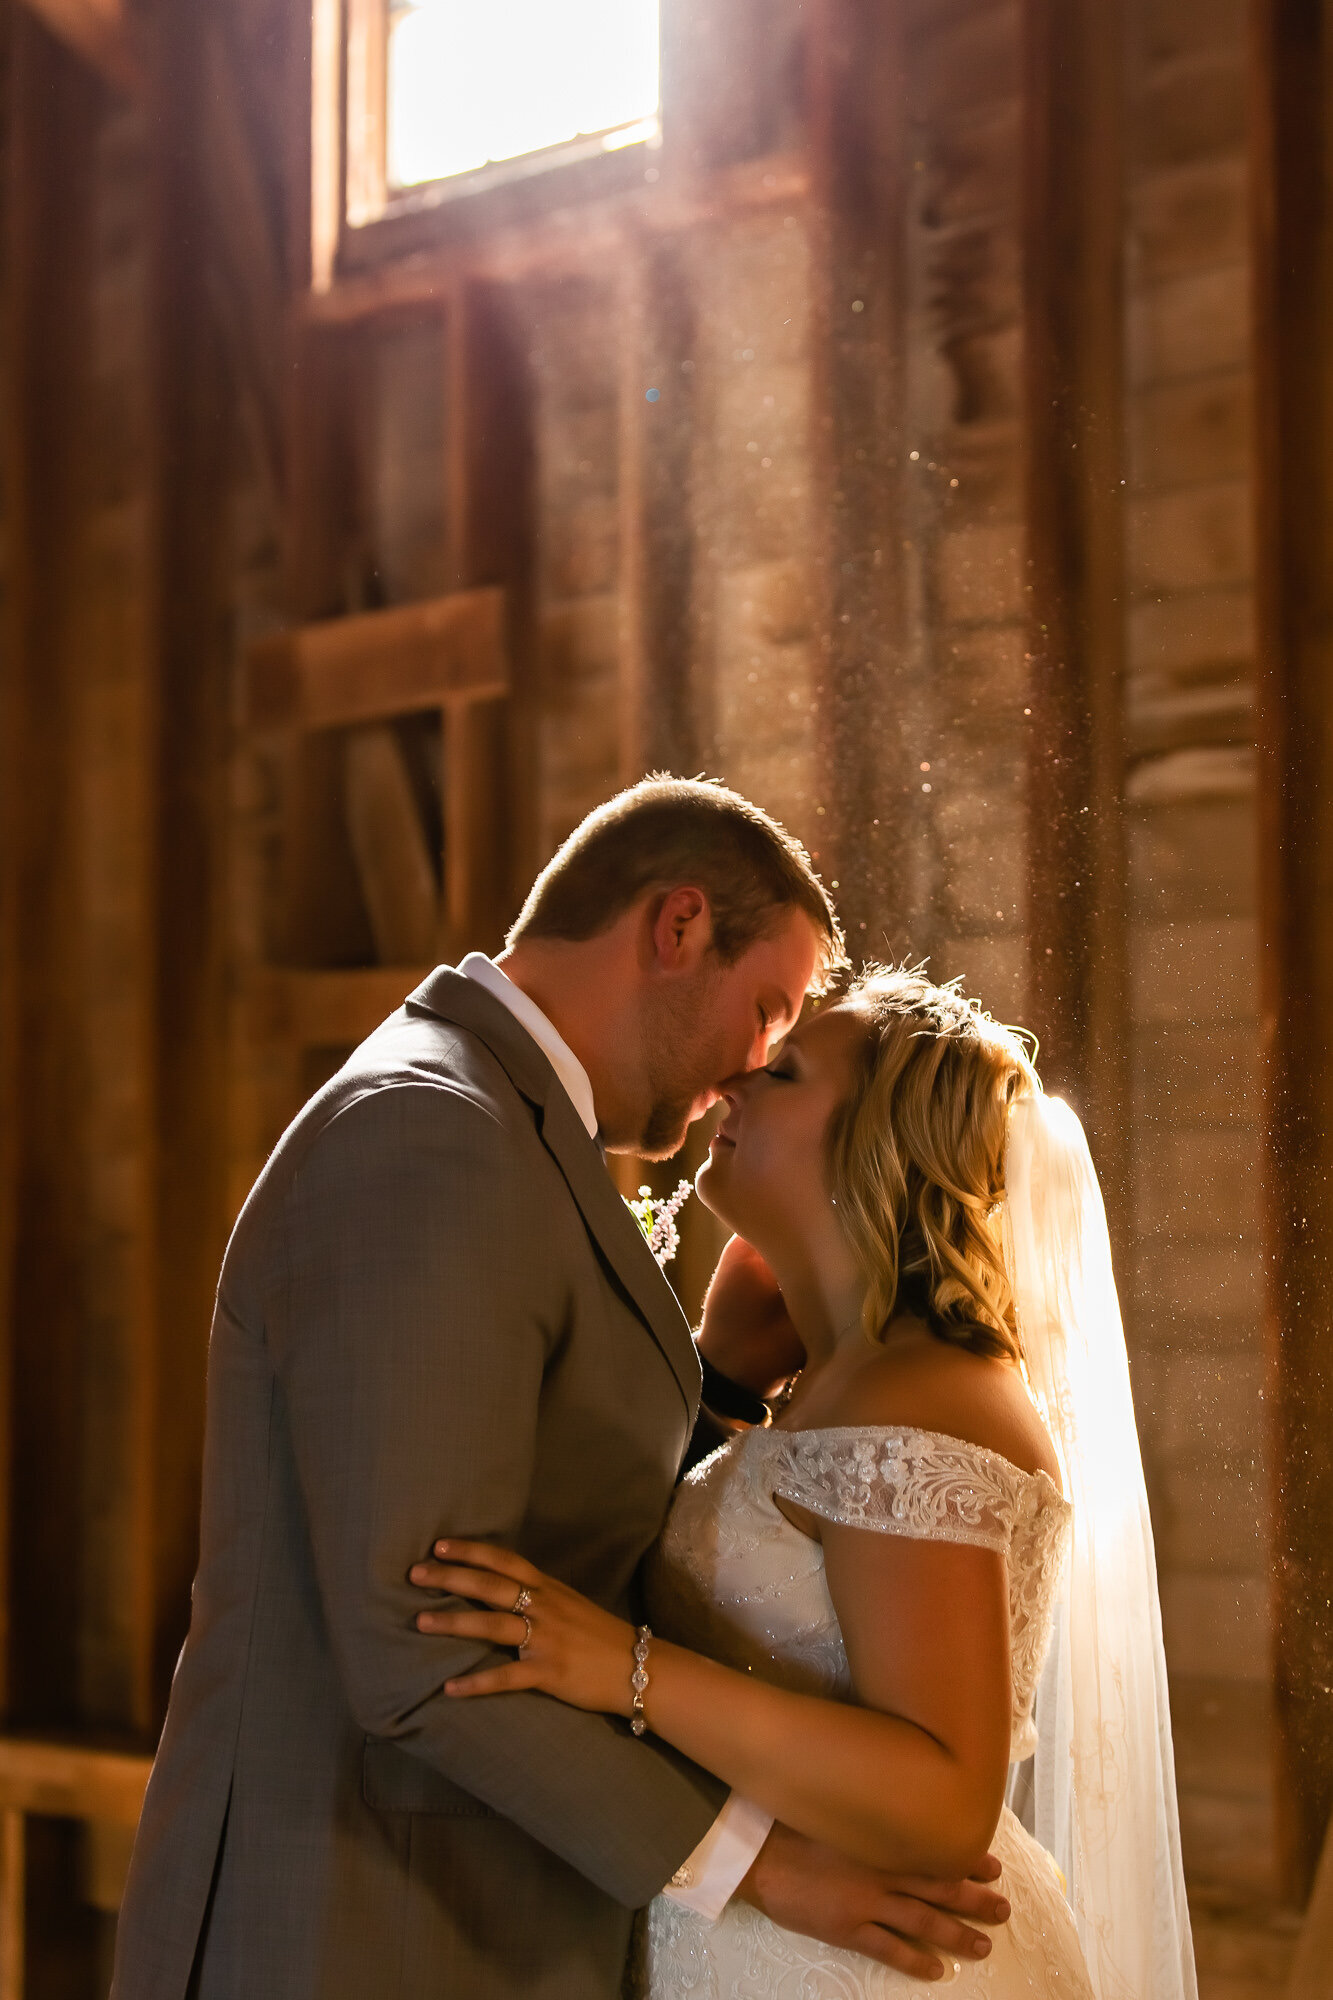 Romantic portrait of a bride and groom in a barn for their Kansas City wedding